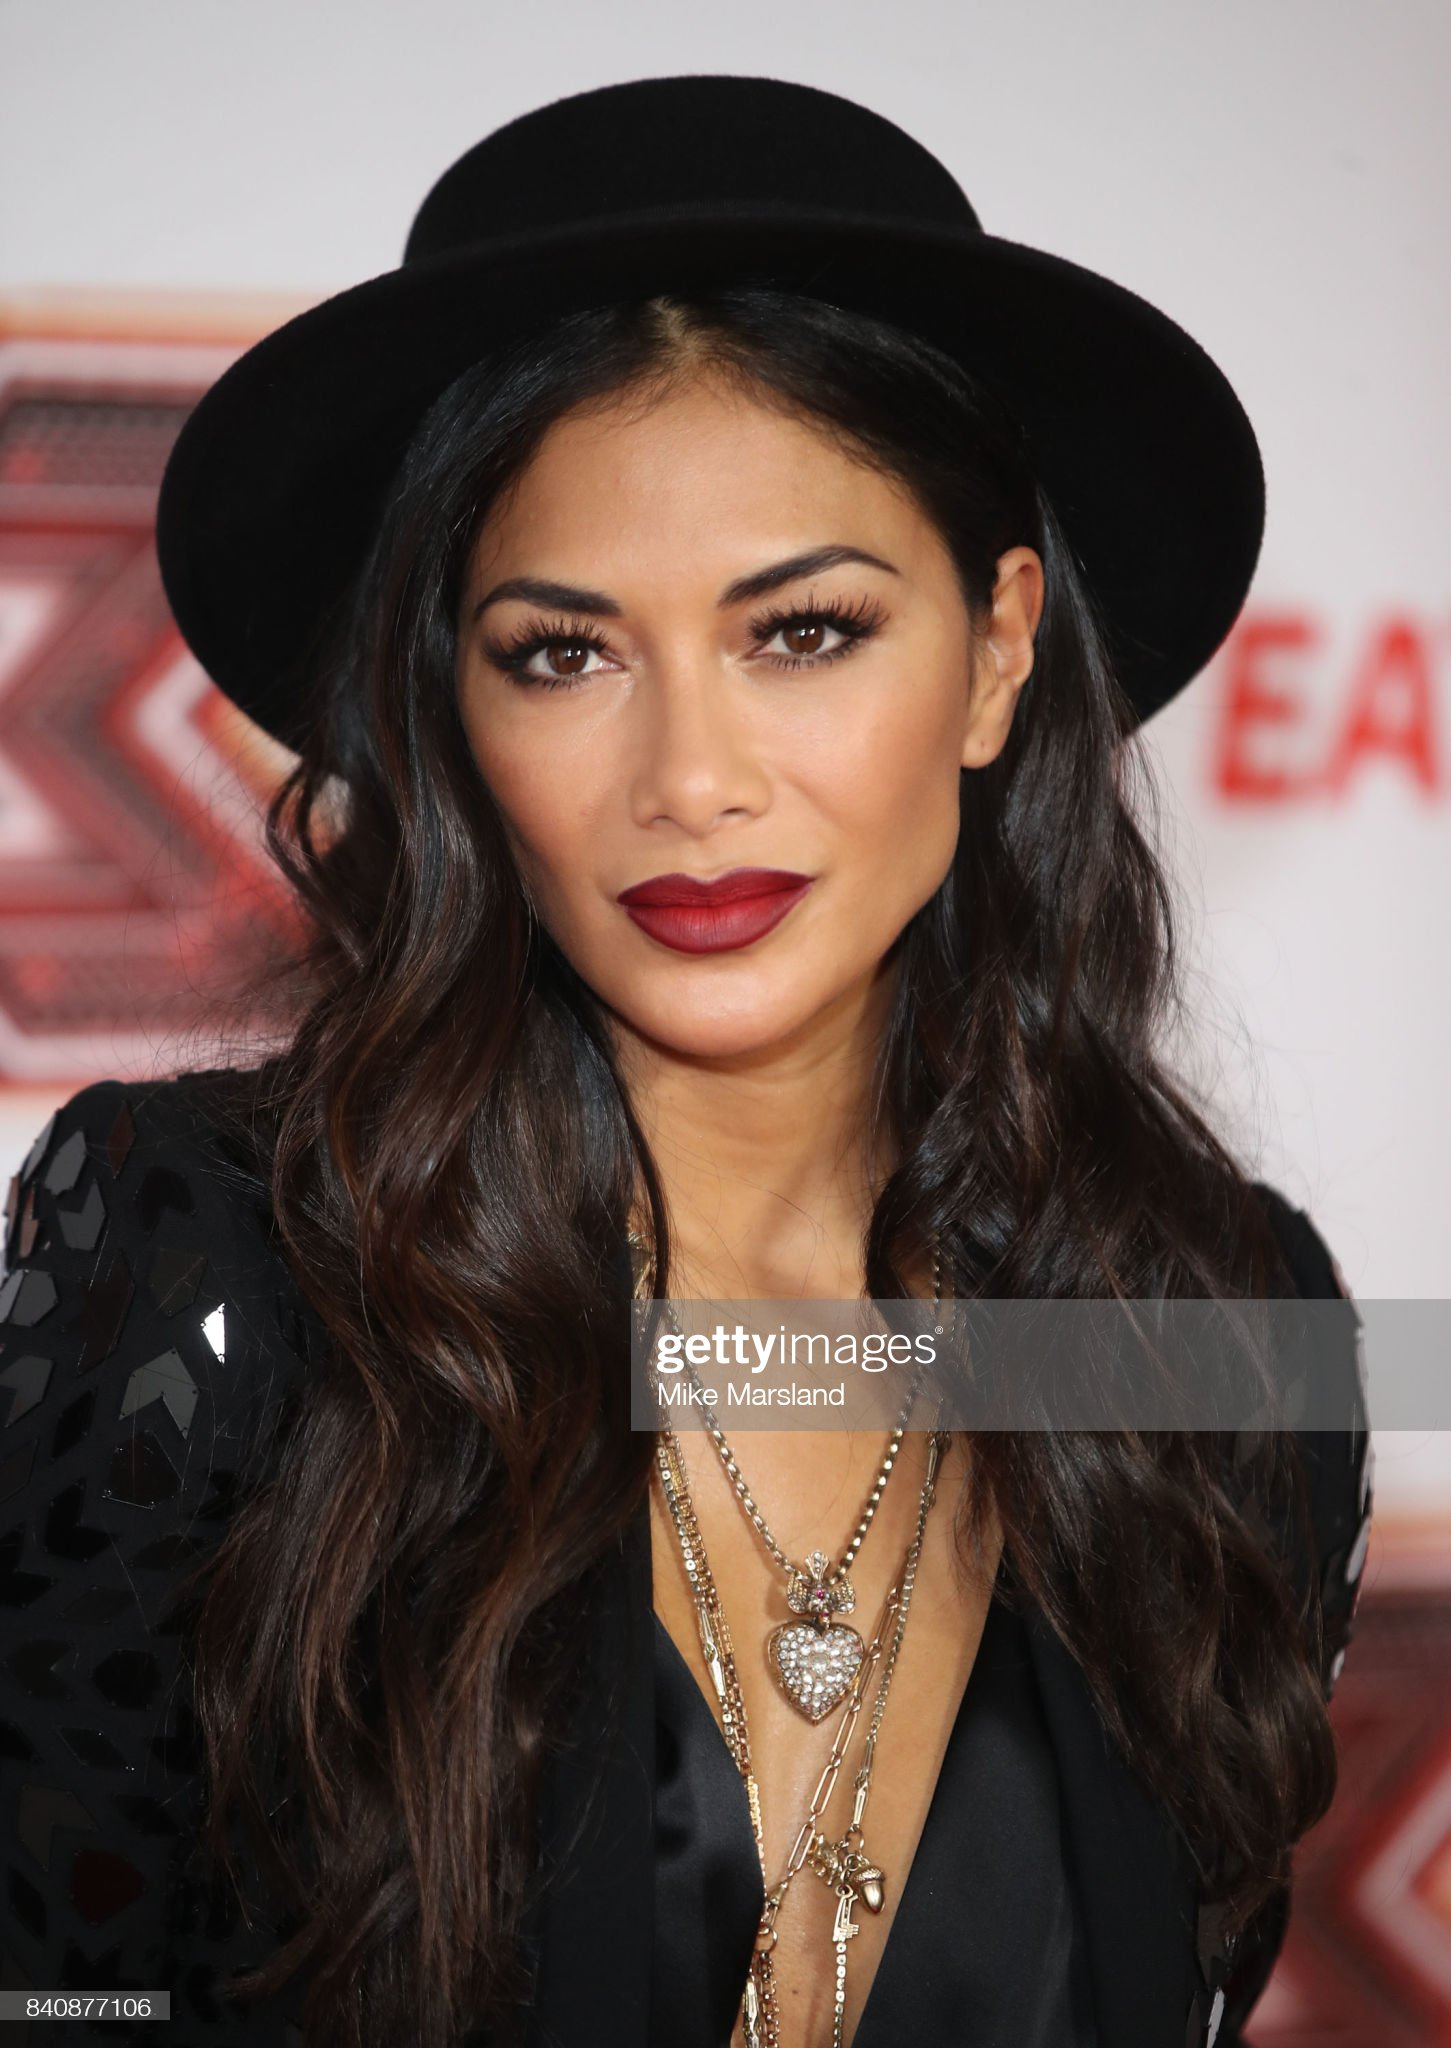 Top 80 Famosas Foroalturas Nicole-scherzinger-during-the-x-factor-series-14-red-carpet-press-at-picture-id840877106?s=2048x2048